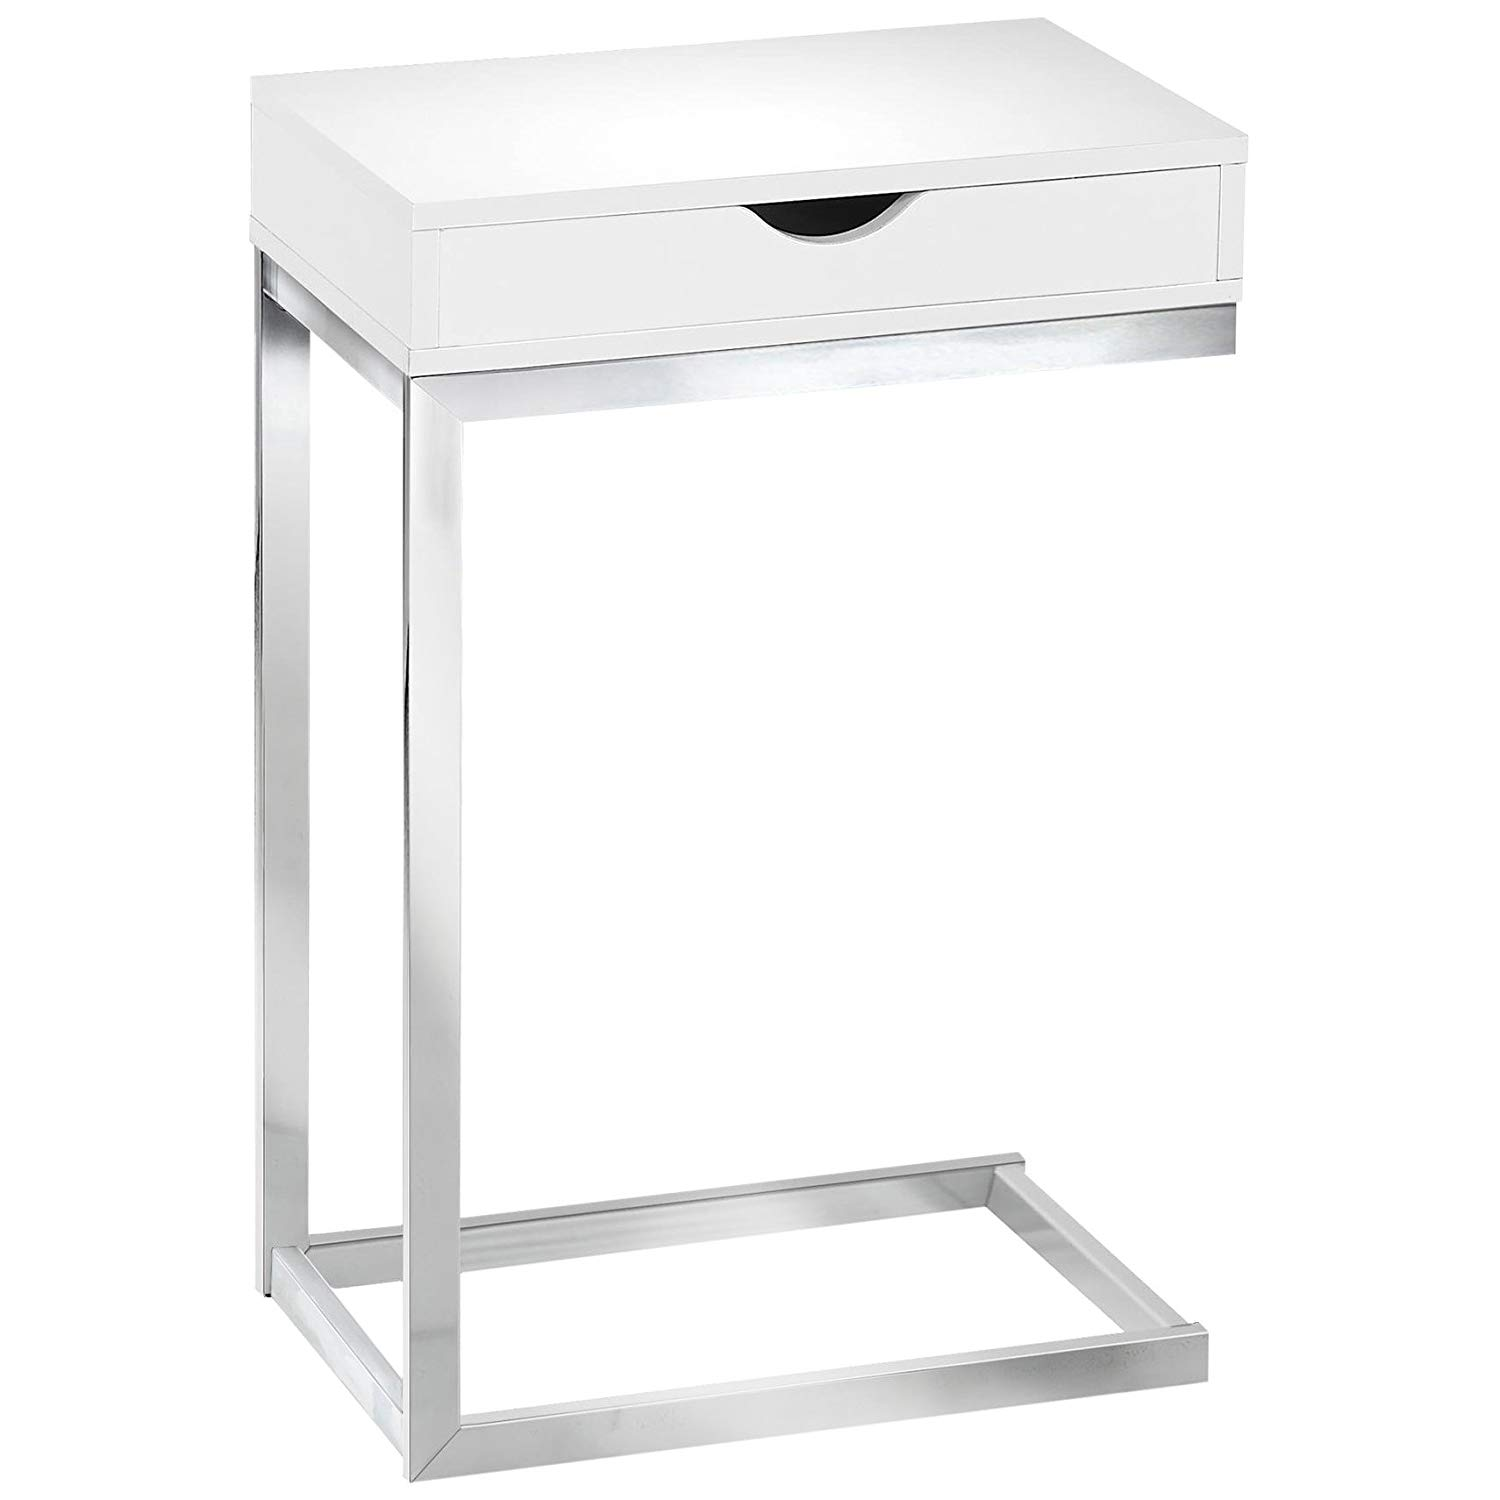 monarch specialties accent table with drawer end wood chrome metal glossy white kitchen dining large bedside lamps drum side legacy furniture ashley full bedroom sets small that